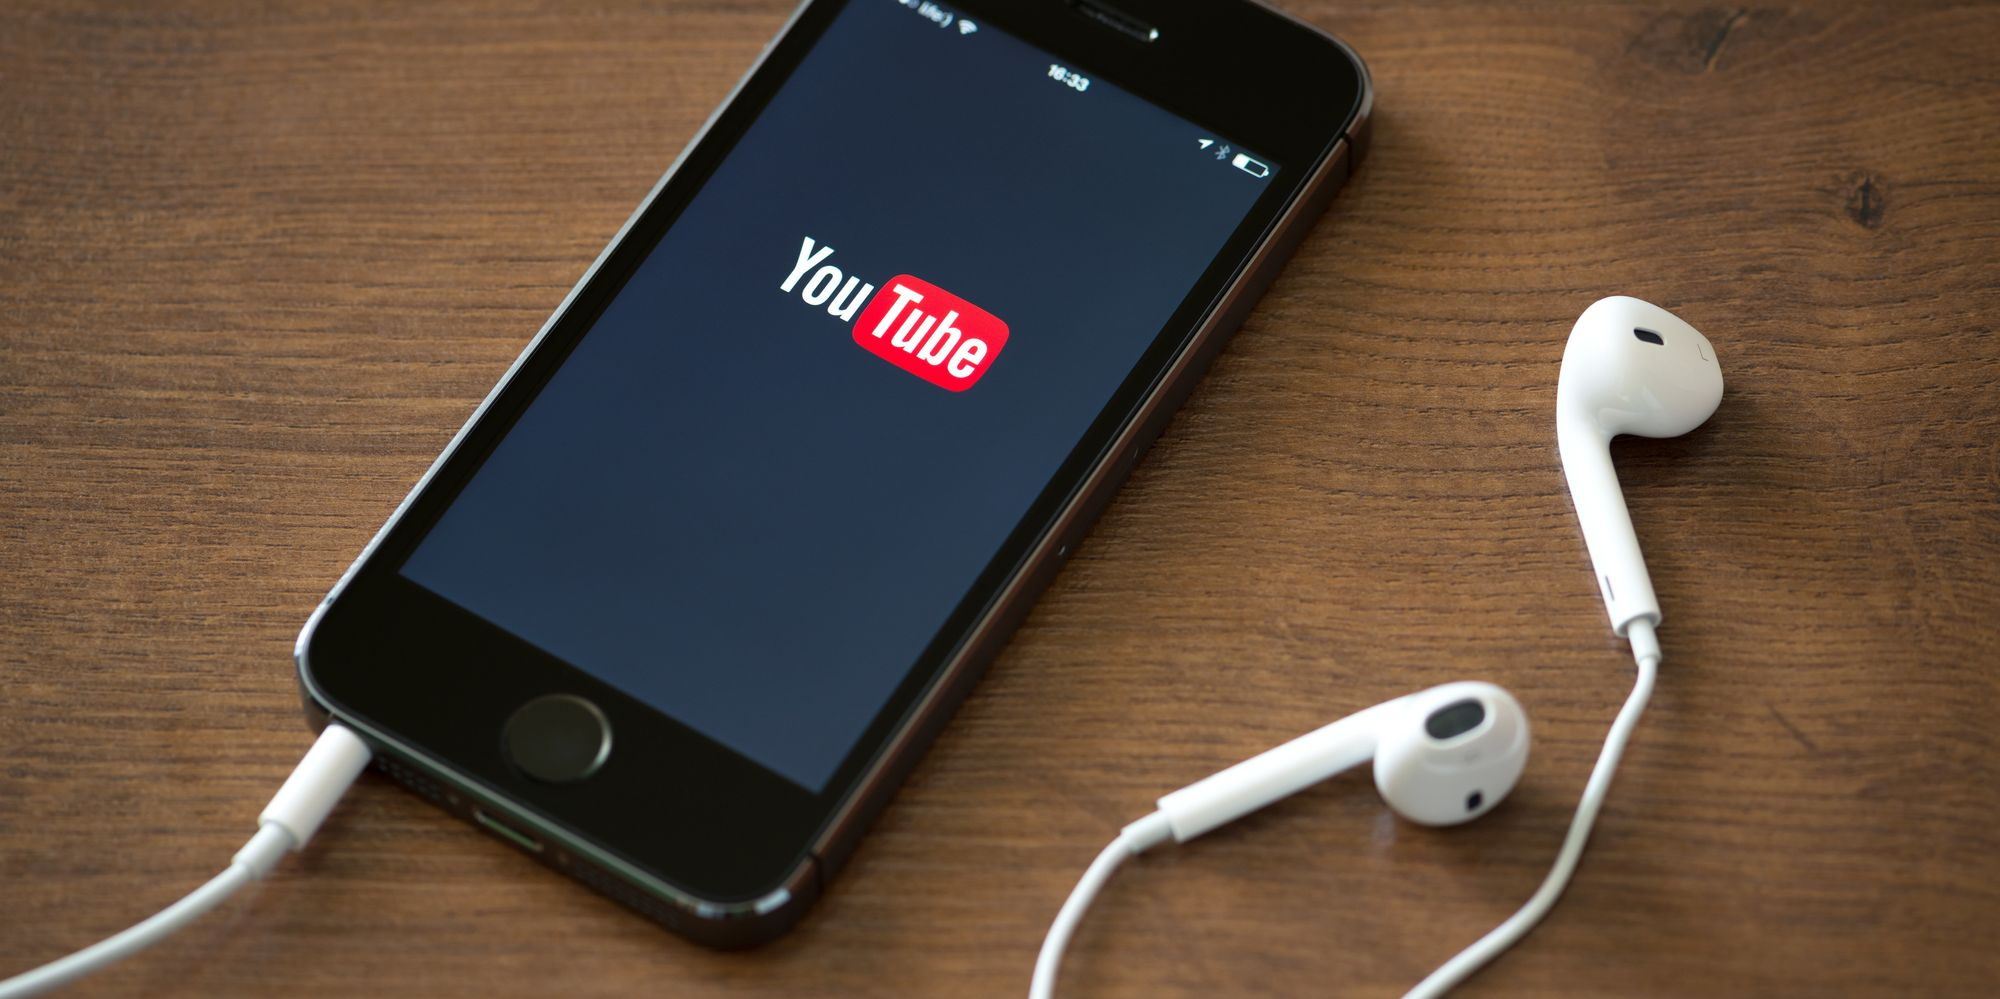 YouTube Is Finally Killing One Of Its Most Annoying Advert Features